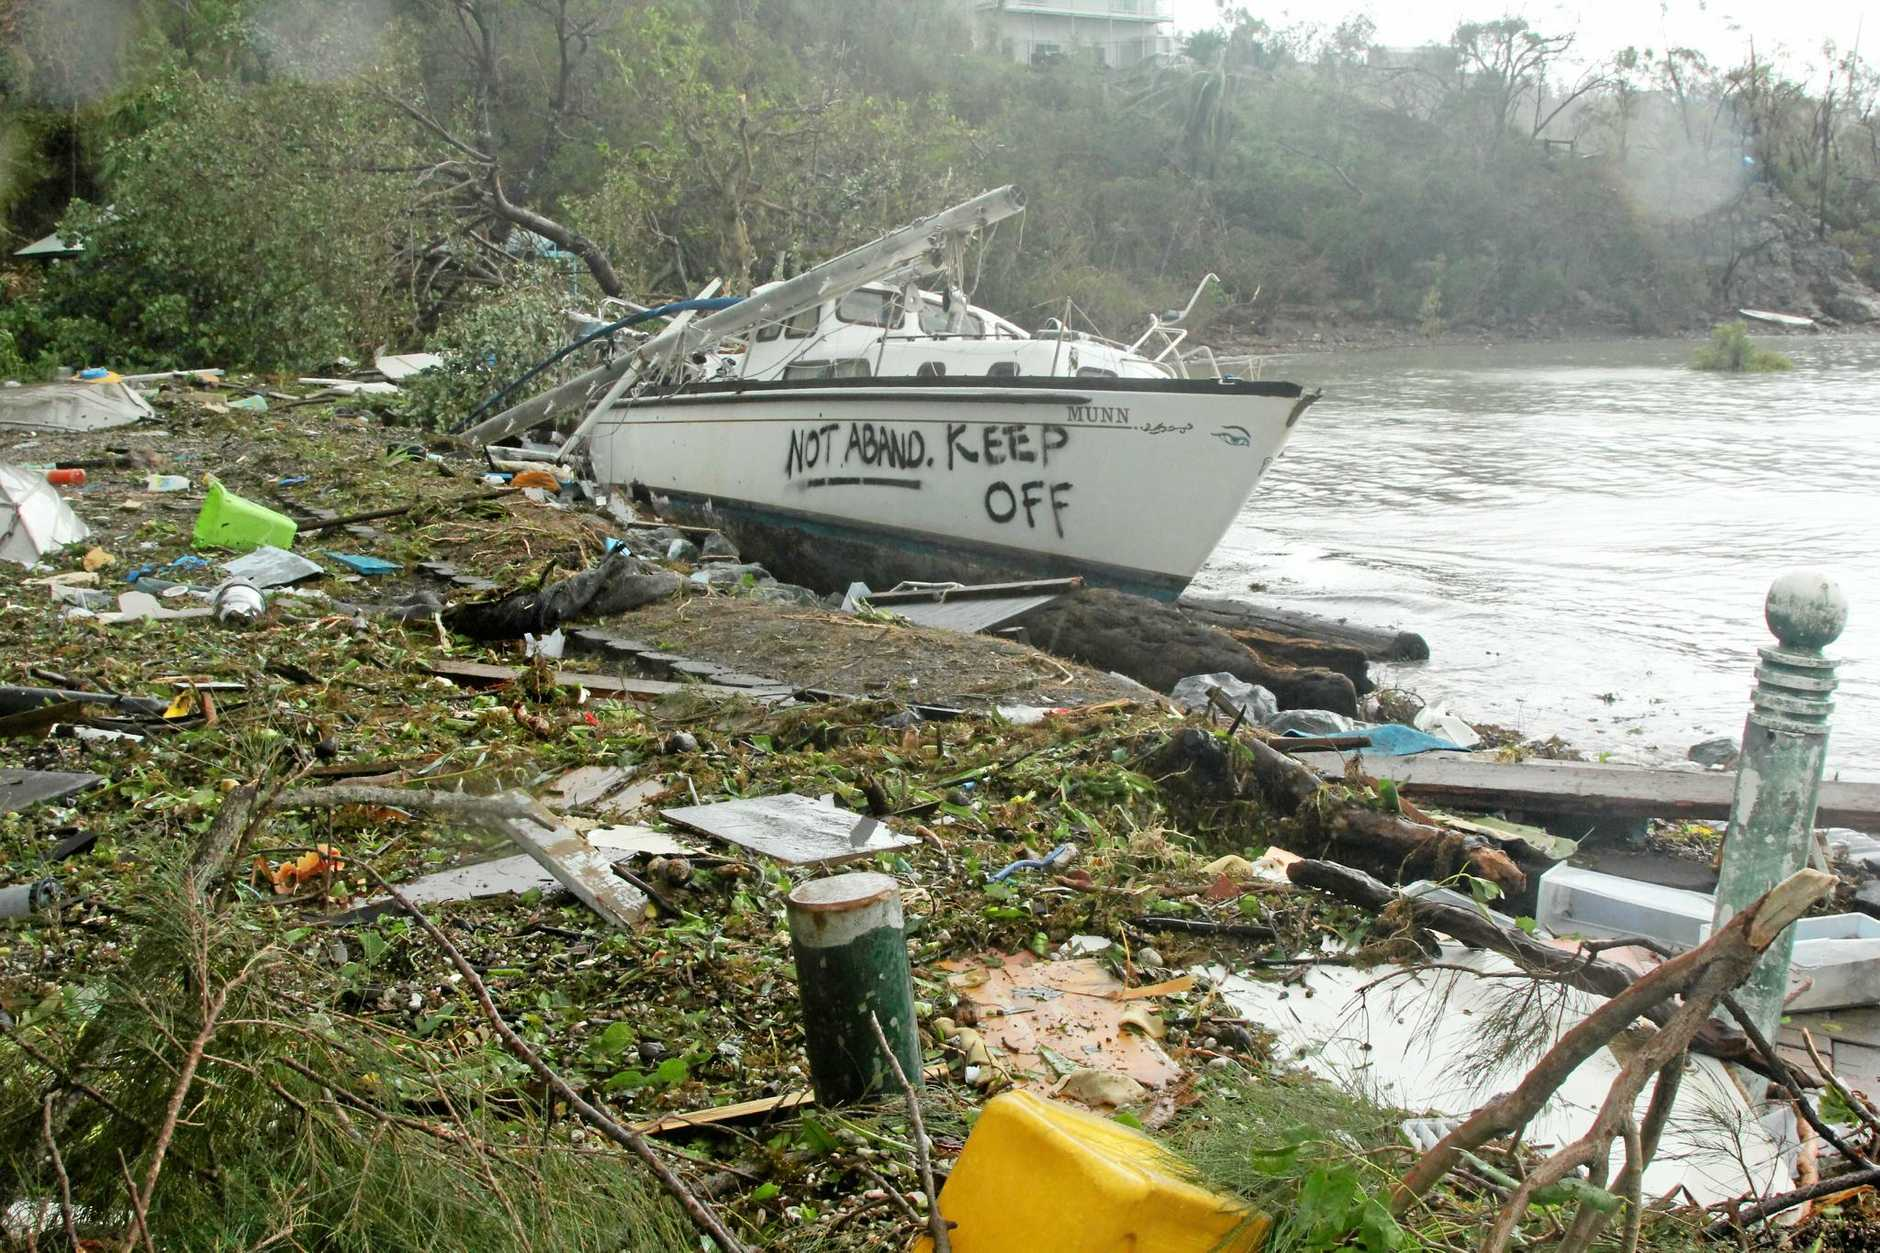 Cyclone Debbie: the aftermath, Wednesday March 29.